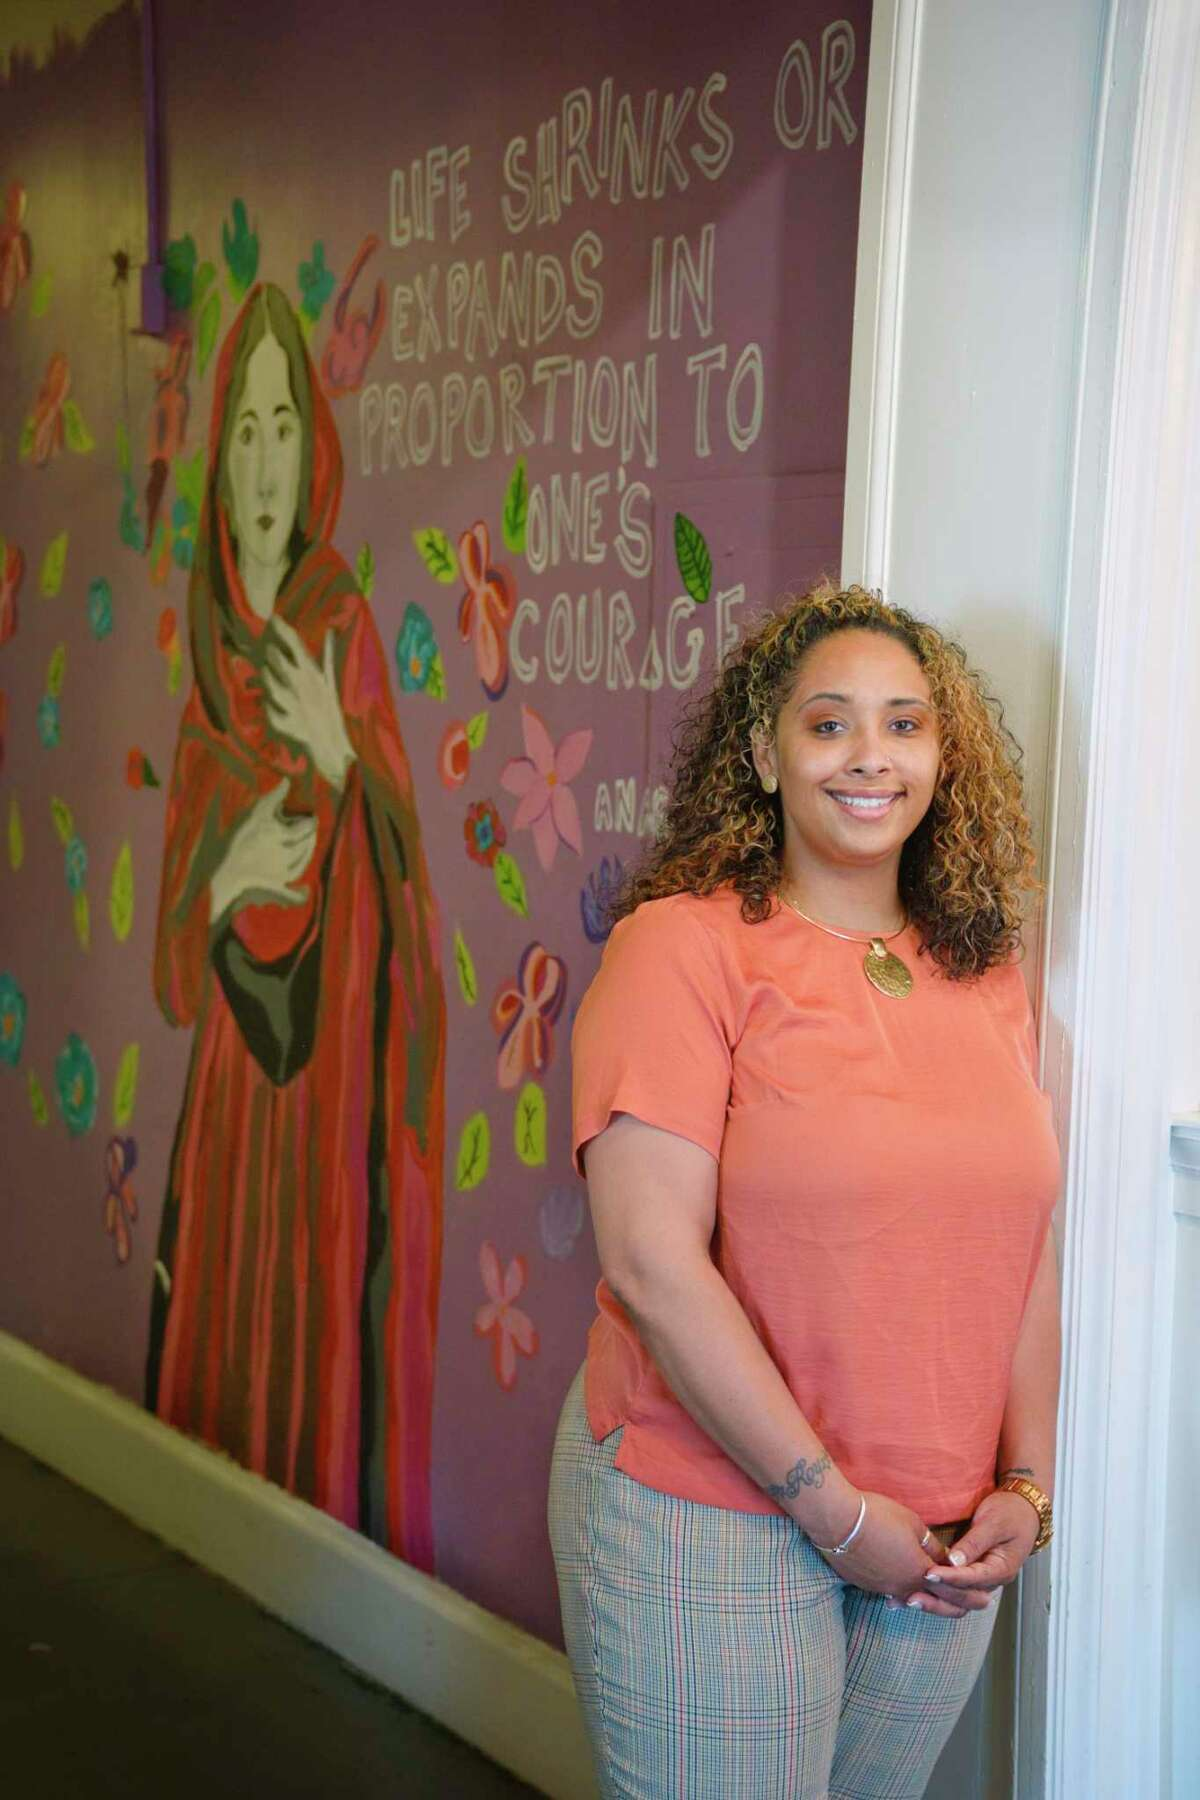 Starletta Smith, executive director of the YWCA of the Greater Capital Region, poses for a photo at the YWCA on Monday, March 22, 2021, in Troy, N.Y. (Paul Buckowski/Times Union)